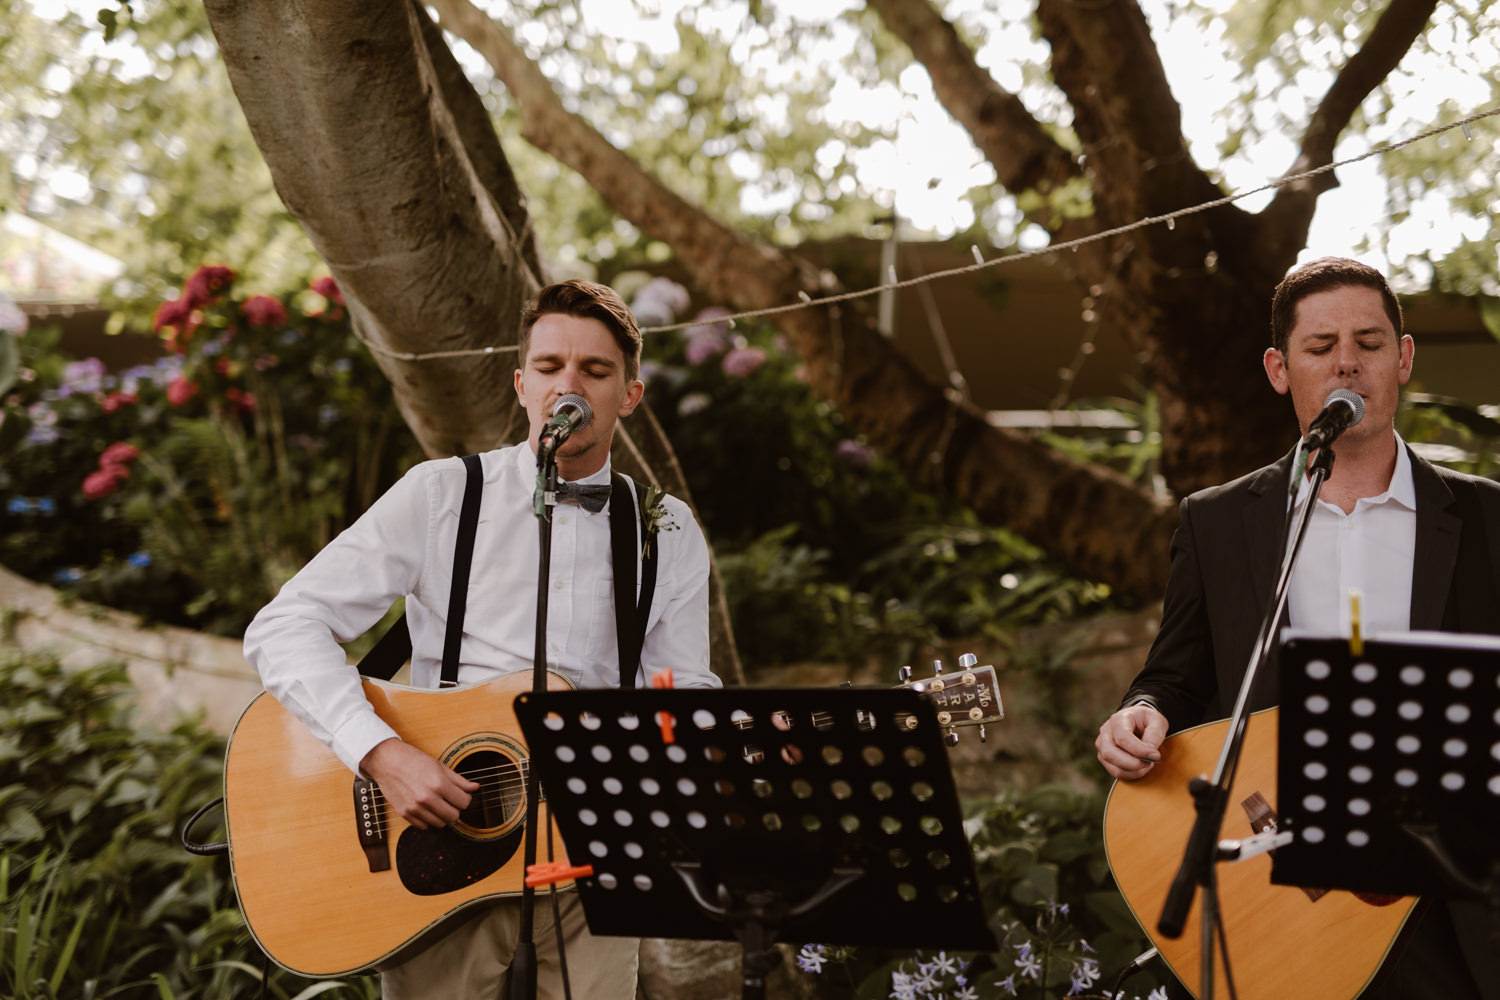 Acoustic live band playing the guests seamlessly into the reception.